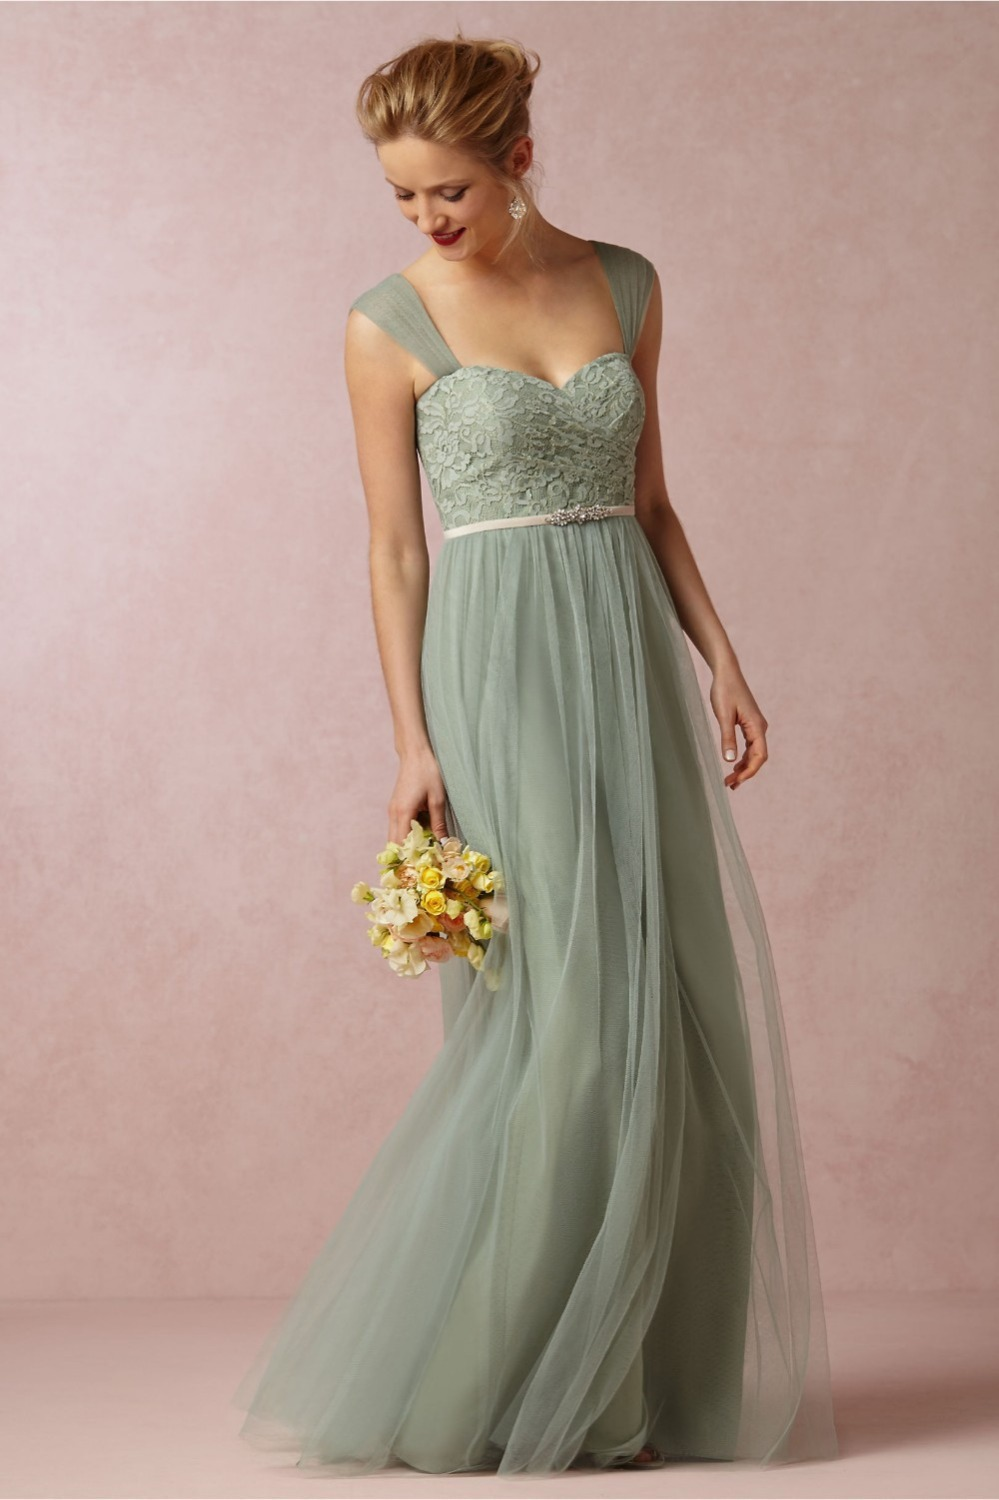 Elegant Long Bridesmaid Dresses For Wedding Mint Green 2015 Beach Dress Robe Demoiselle Dhonneur In From